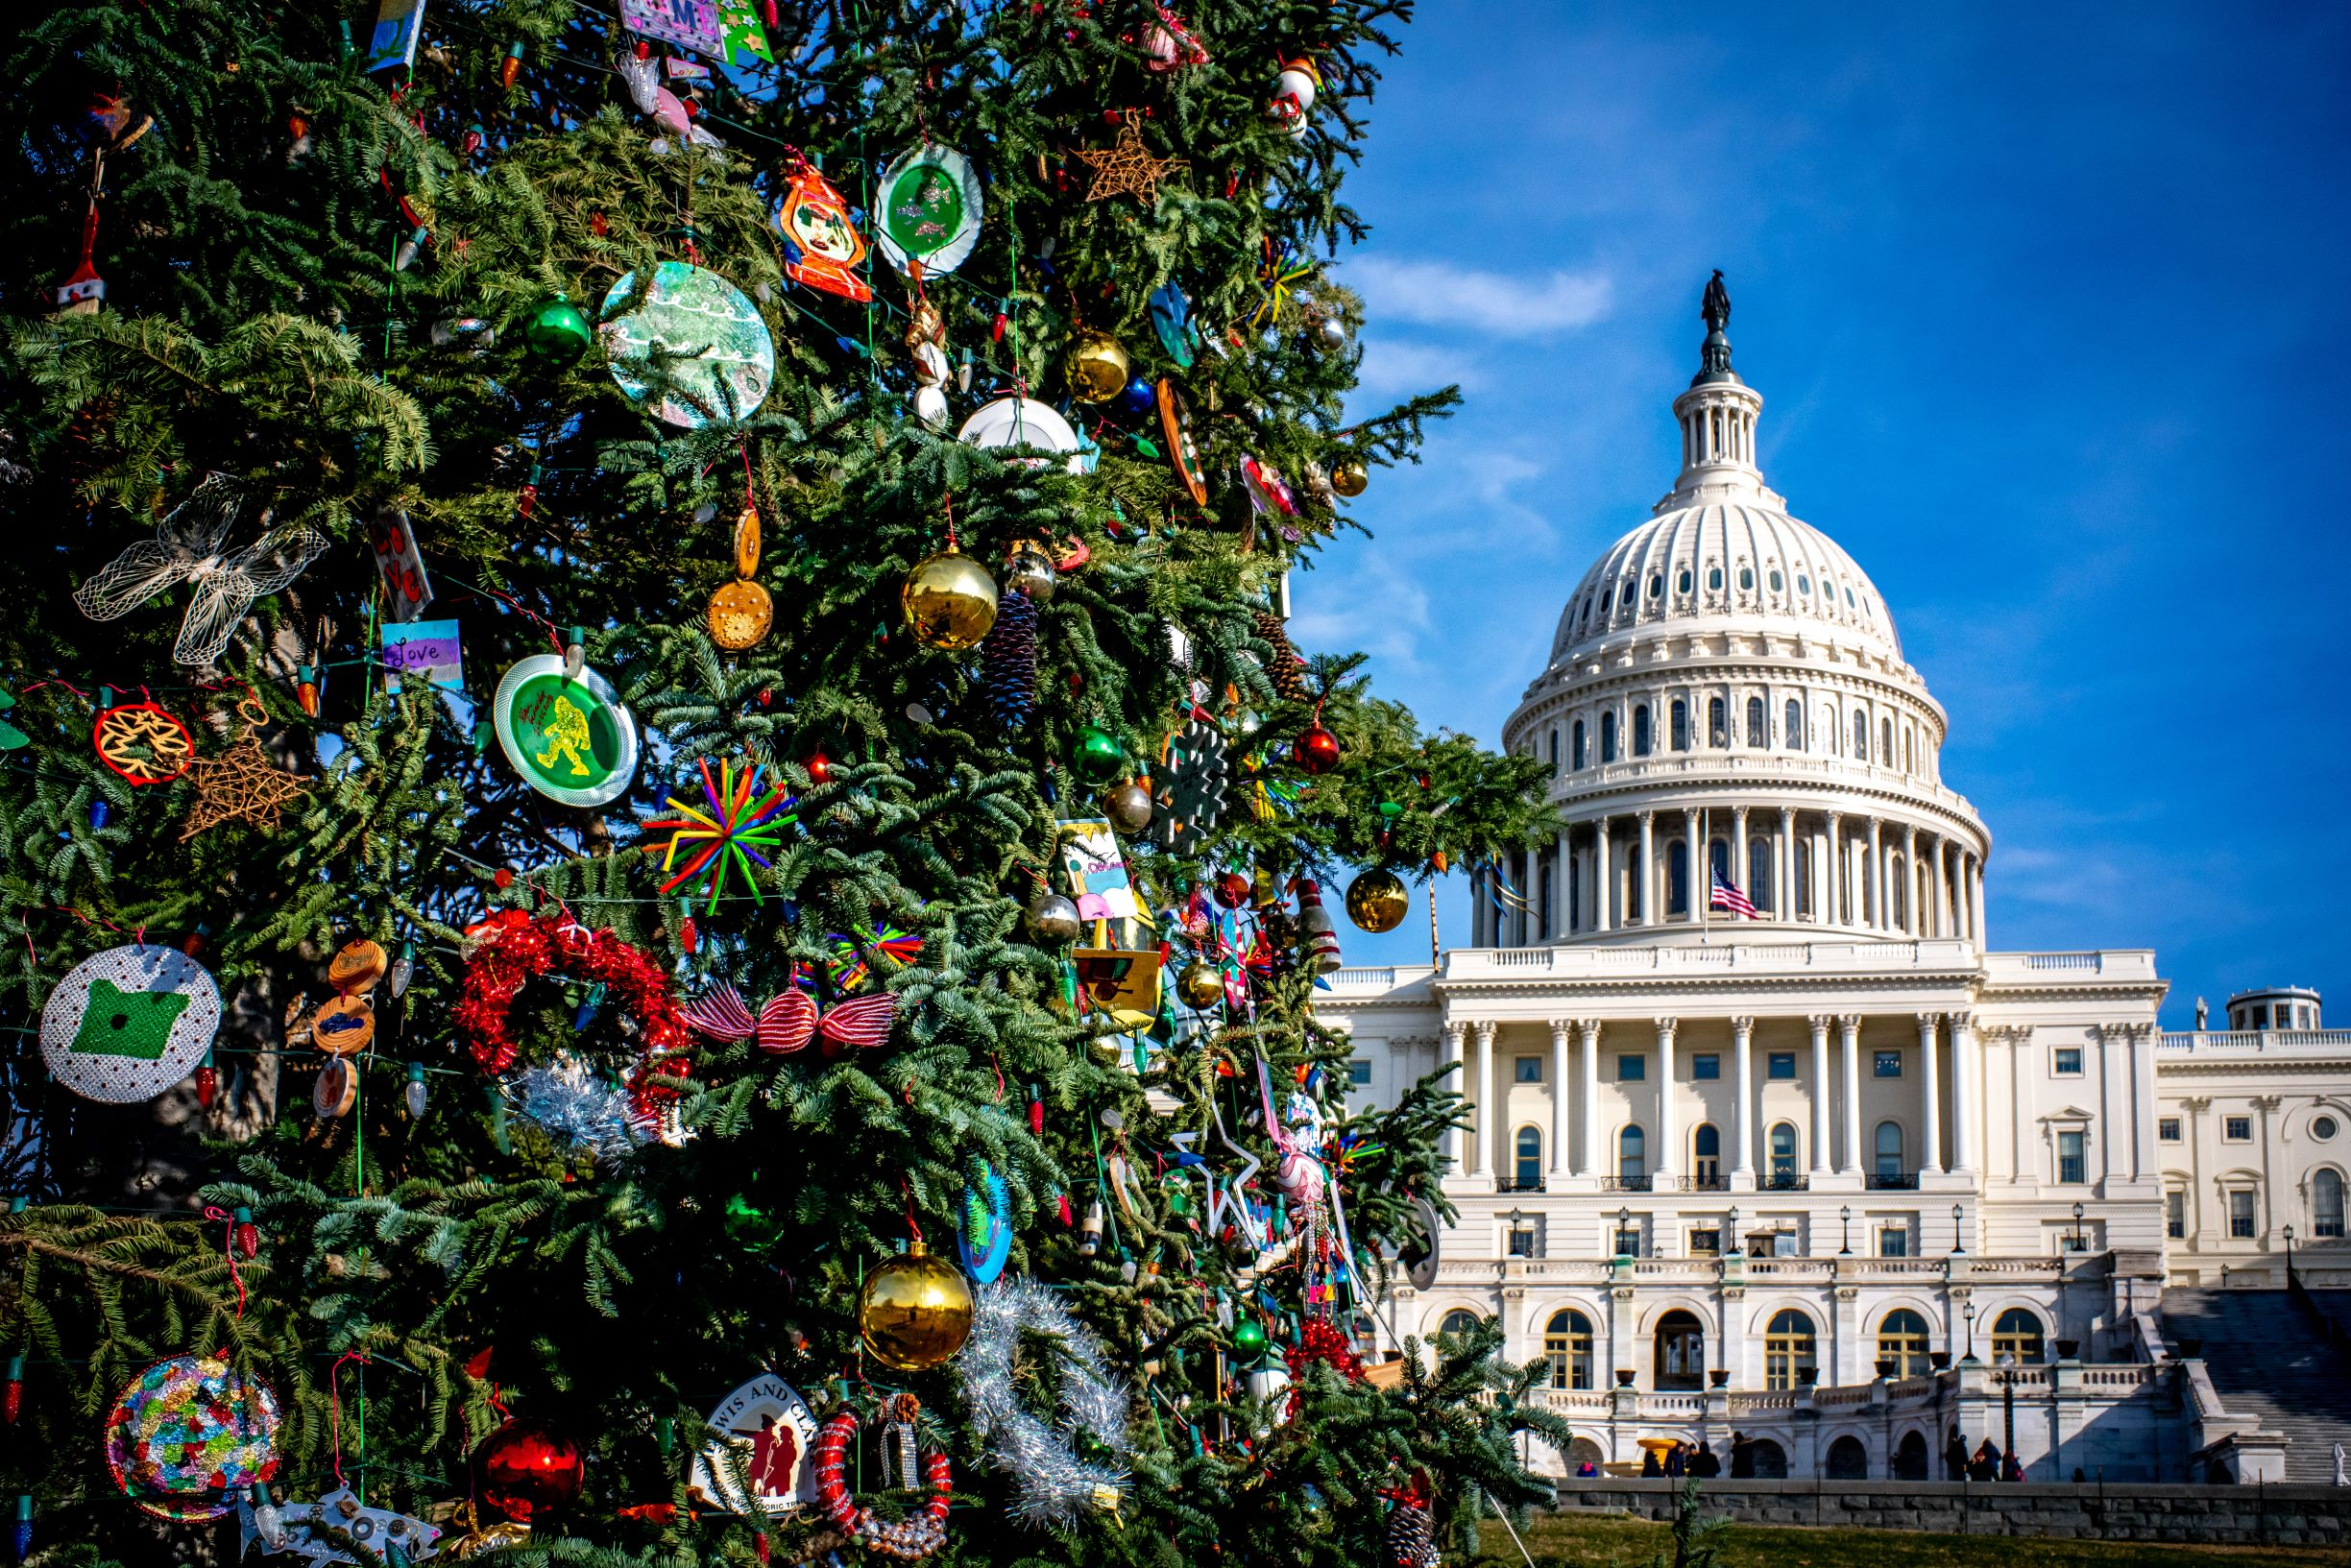 Photo of the Capital Christmas Tree in Washington DC with the Capital building in the background.